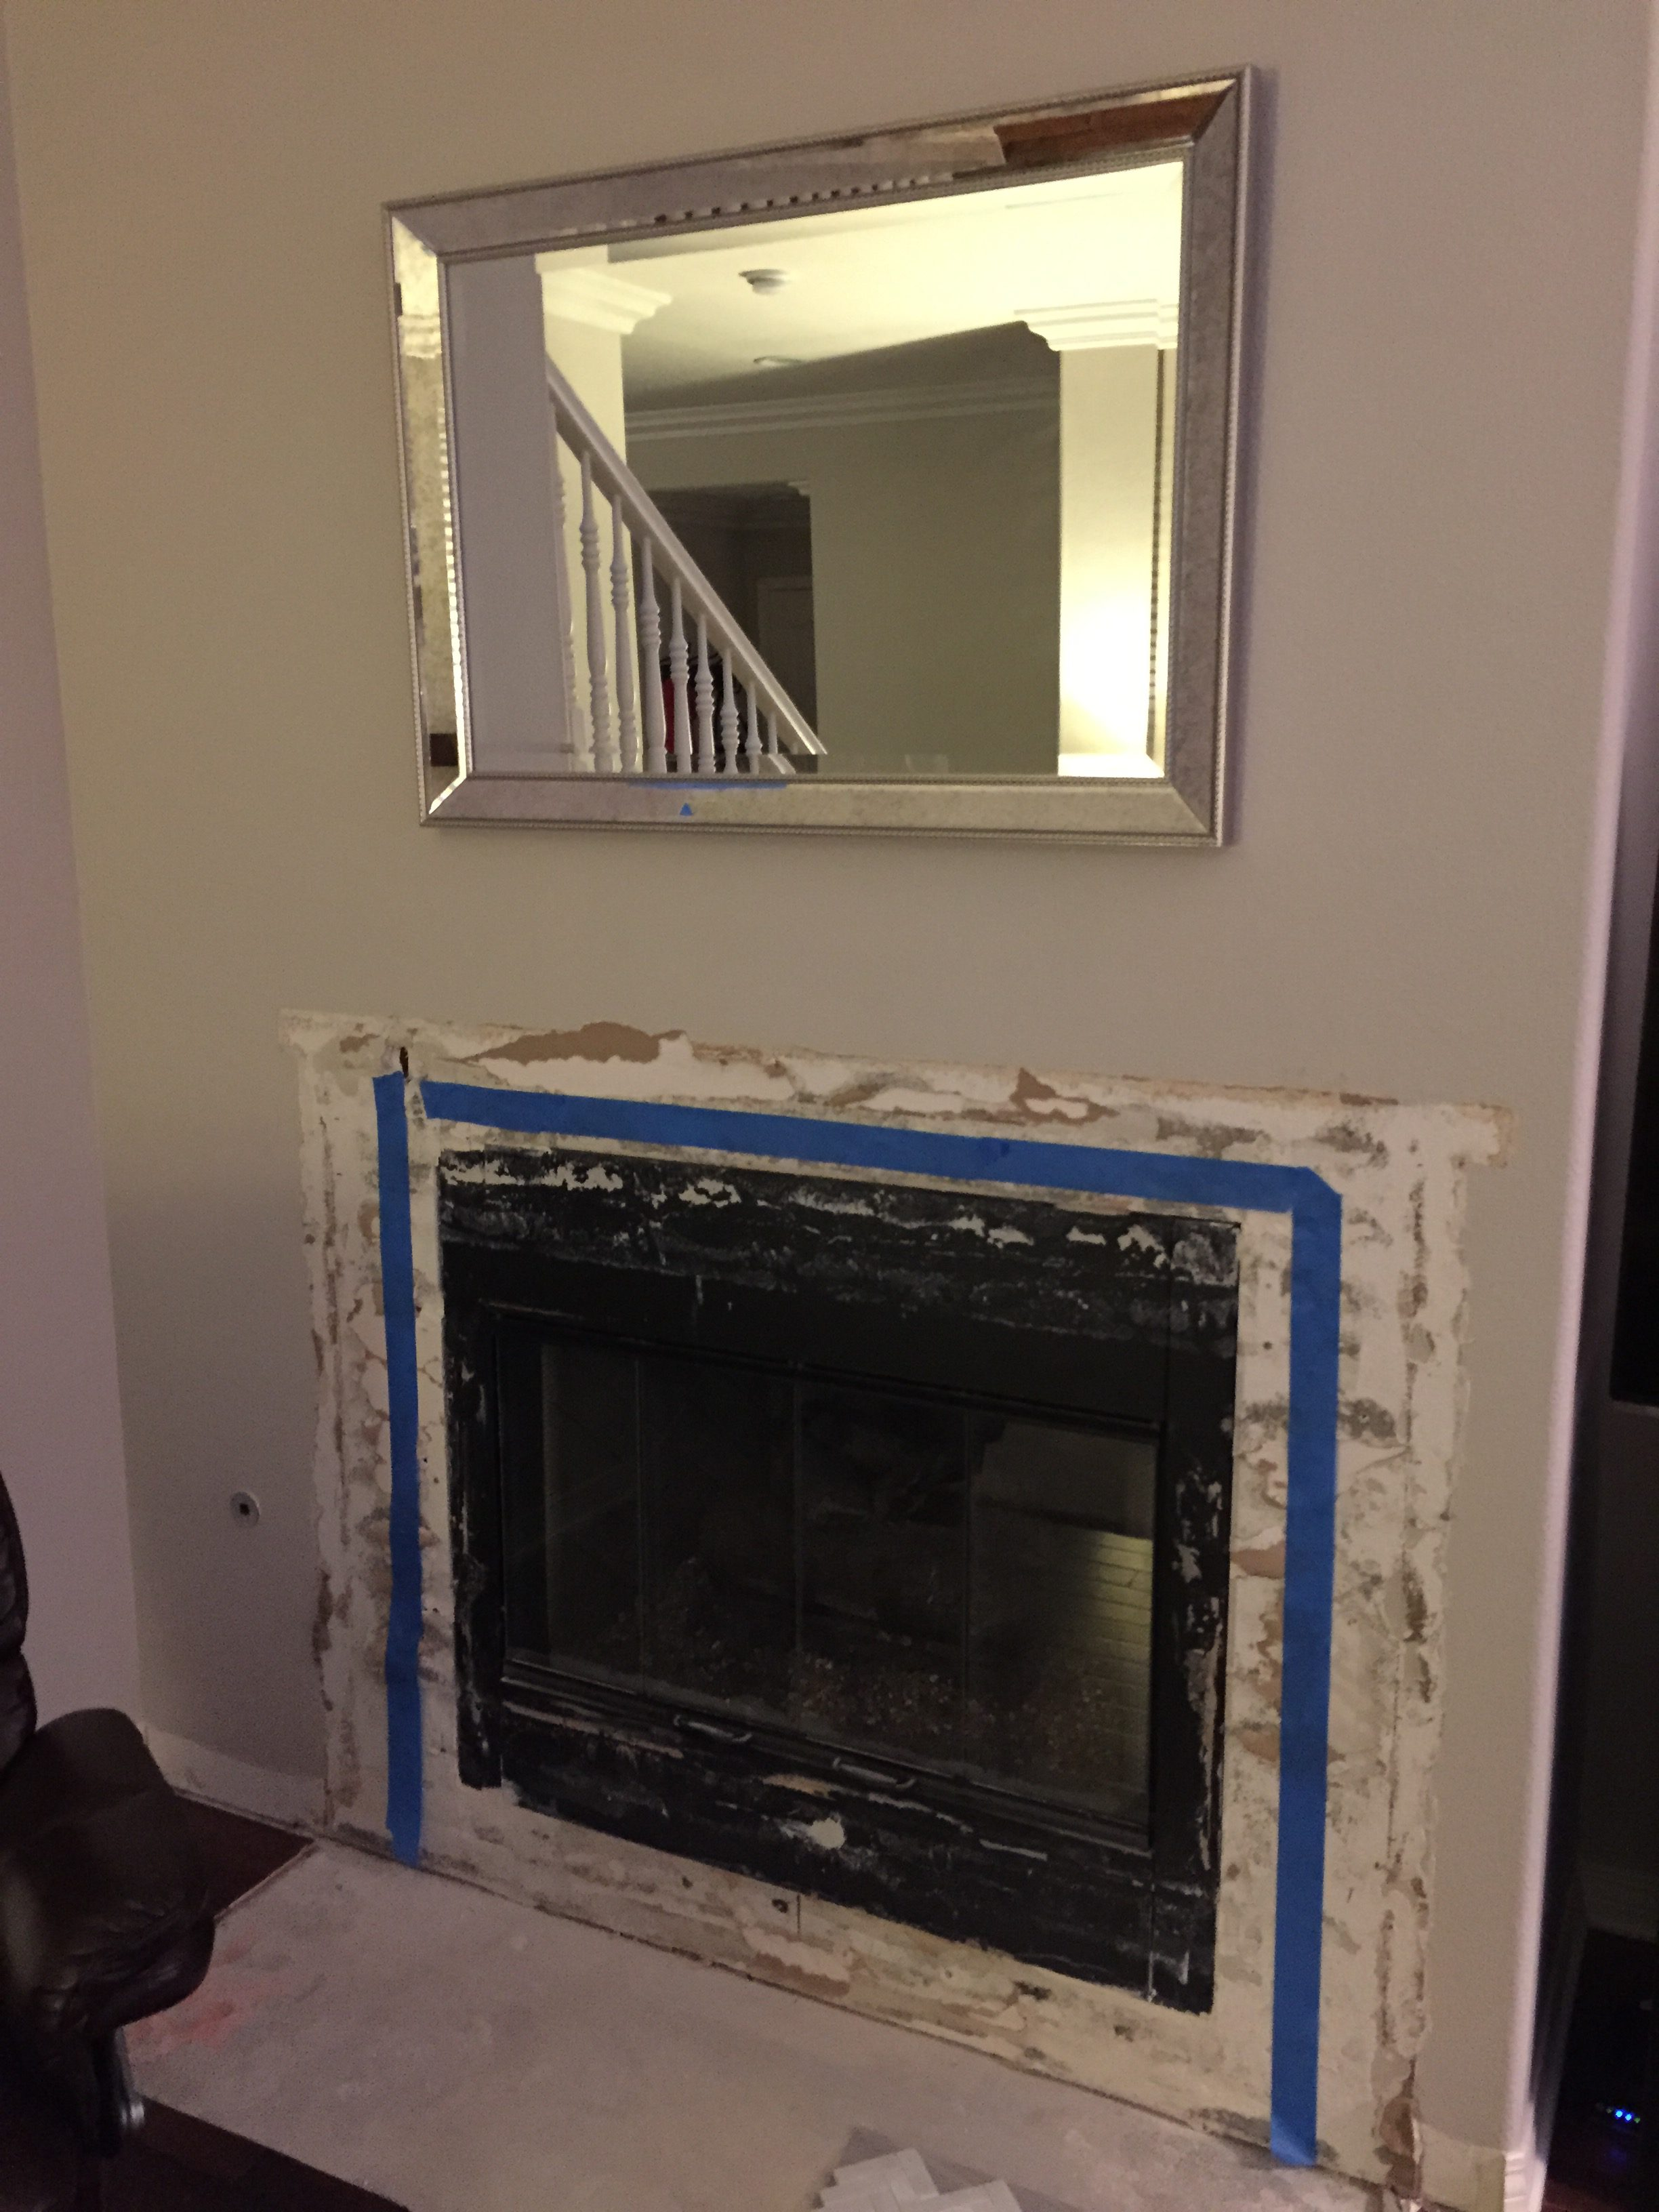 how i was hated this gallery renovation wife fireplace from began album home time hvqwu project with my done it that imgur on mantel is purchased fine but and we the now